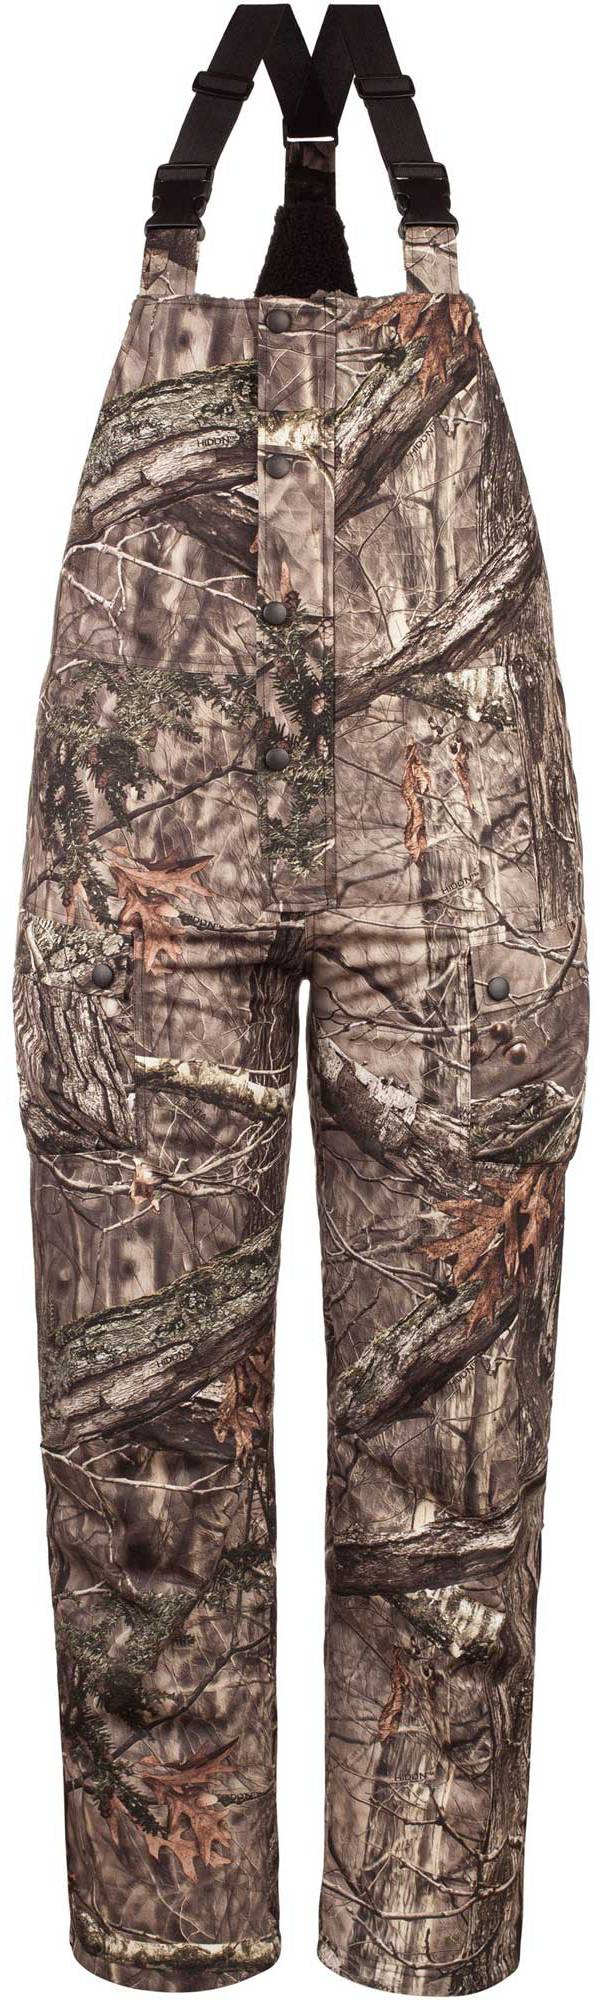 Huntworth Men's Heavy Weight Hunting Bibs product image